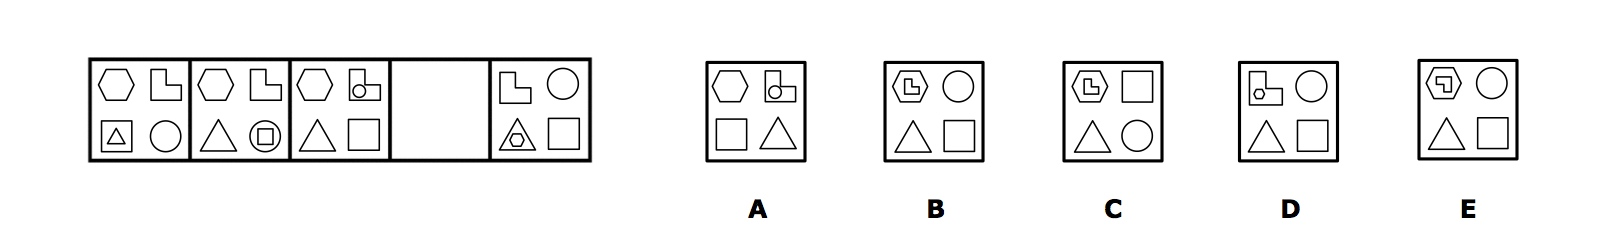 11+ Kent Sample Test Question Non-Verbal Reasoning